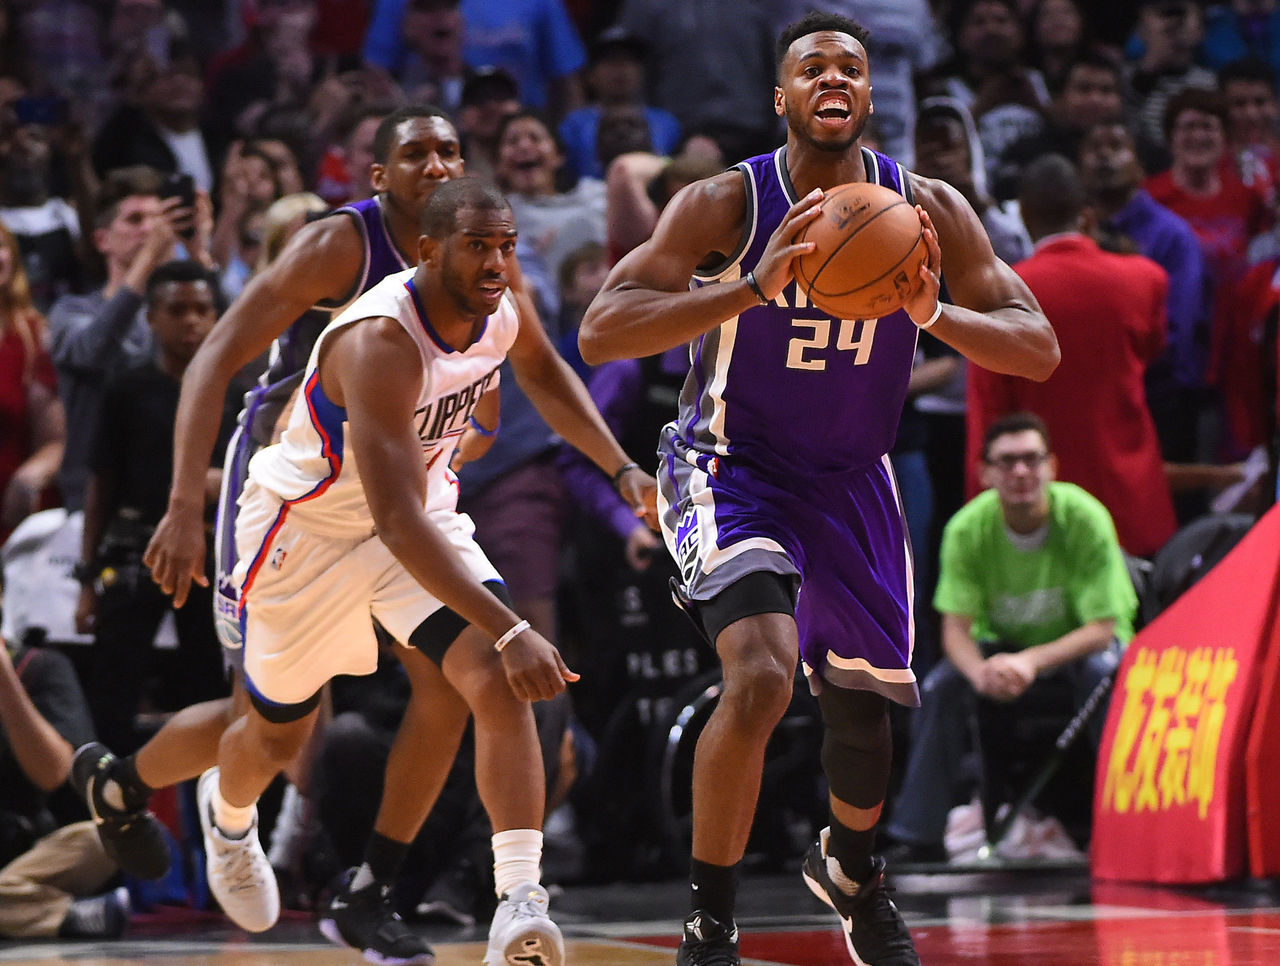 Cropped 2017 03 26t225212z 853366263 nocid rtrmadp 3 nba sacramento kings at los angeles clippers